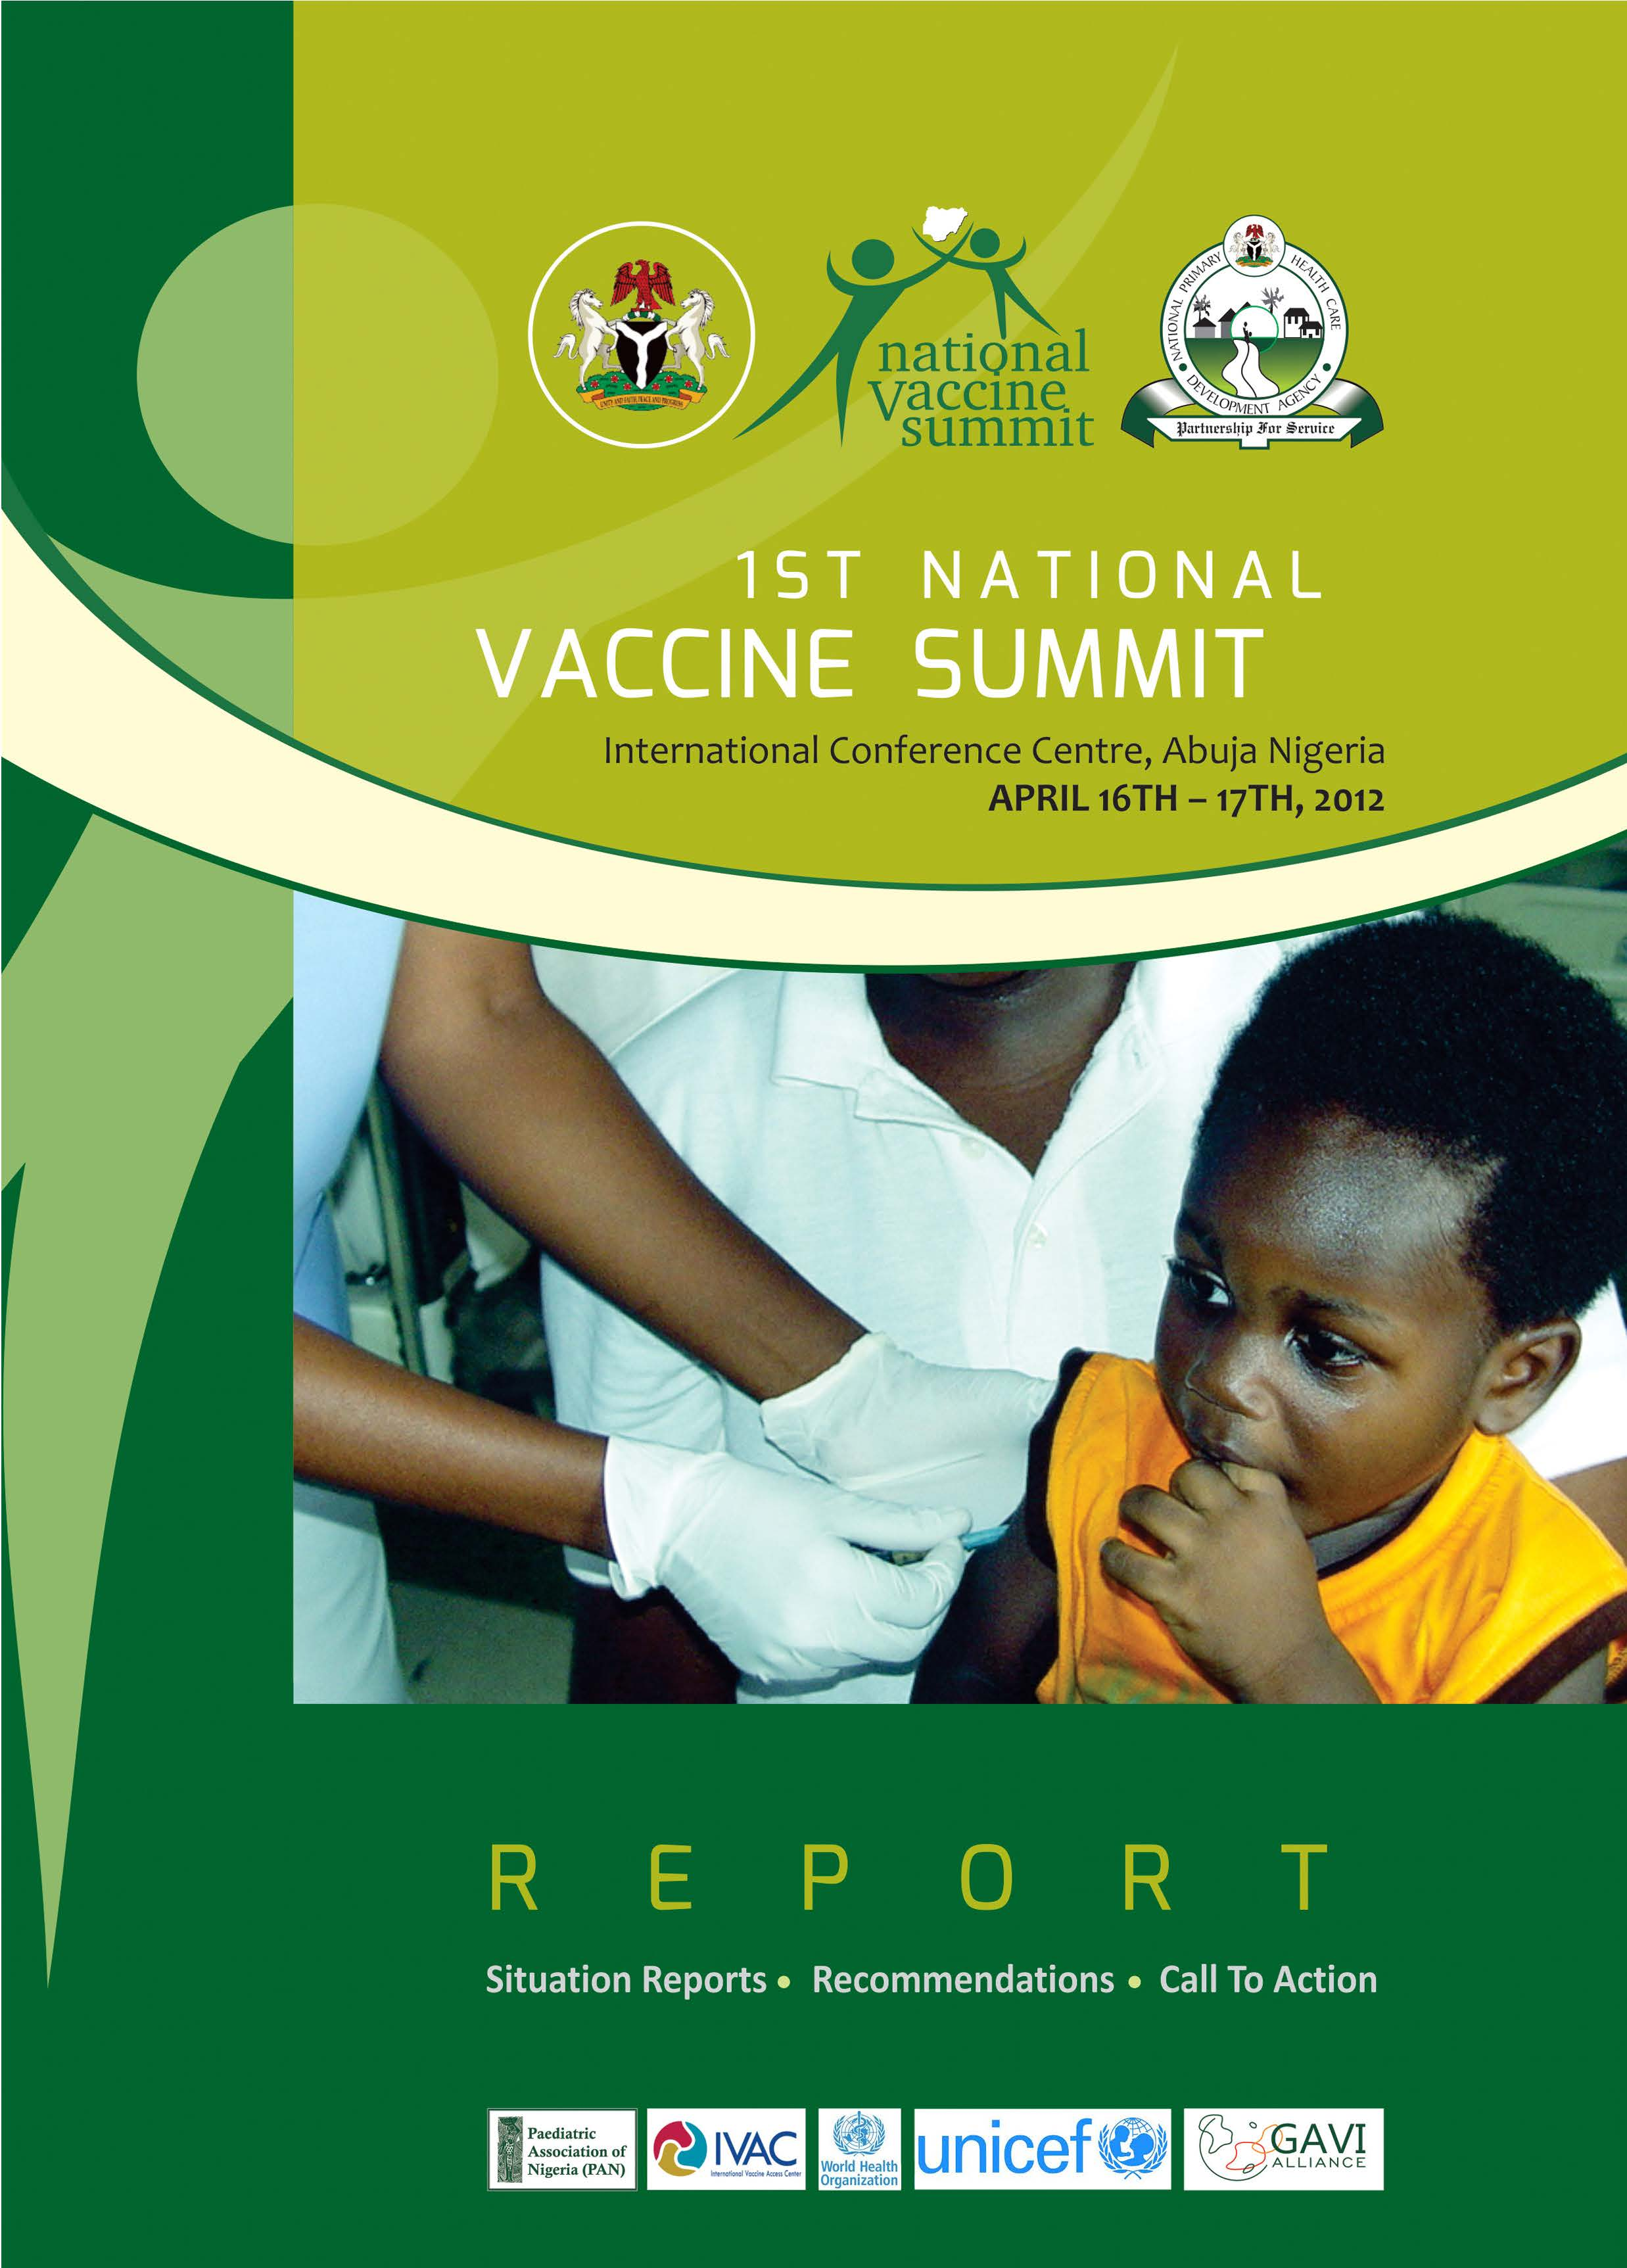 1st National Vaccine Summit Report